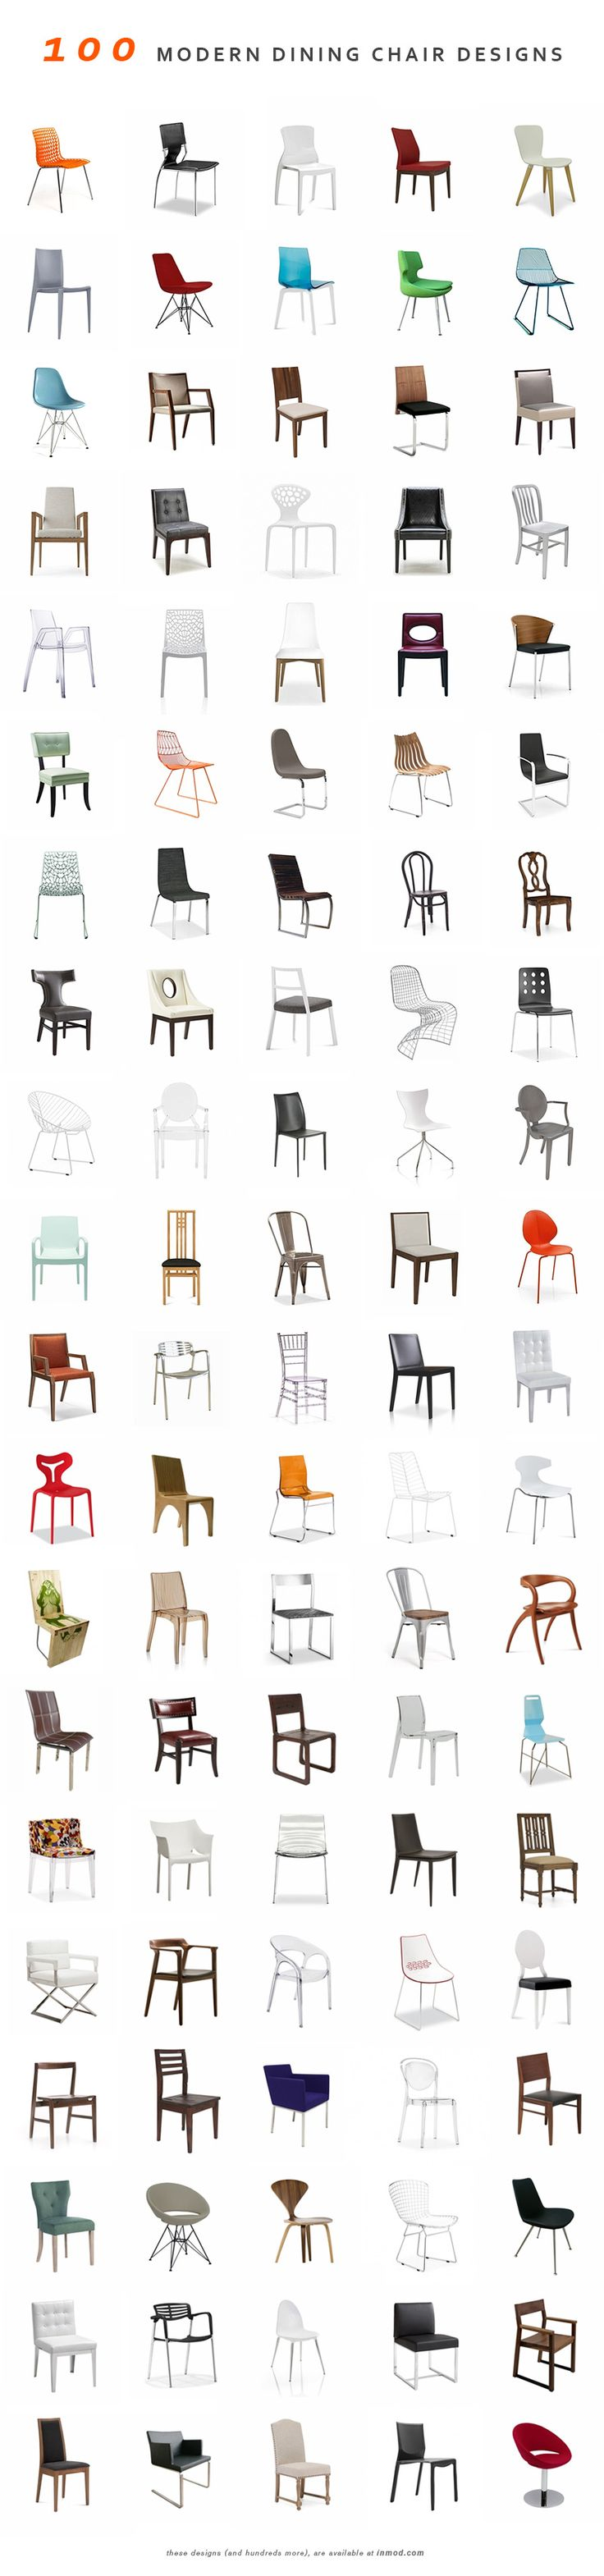 100 Modern Dining Chairs and hundreds more